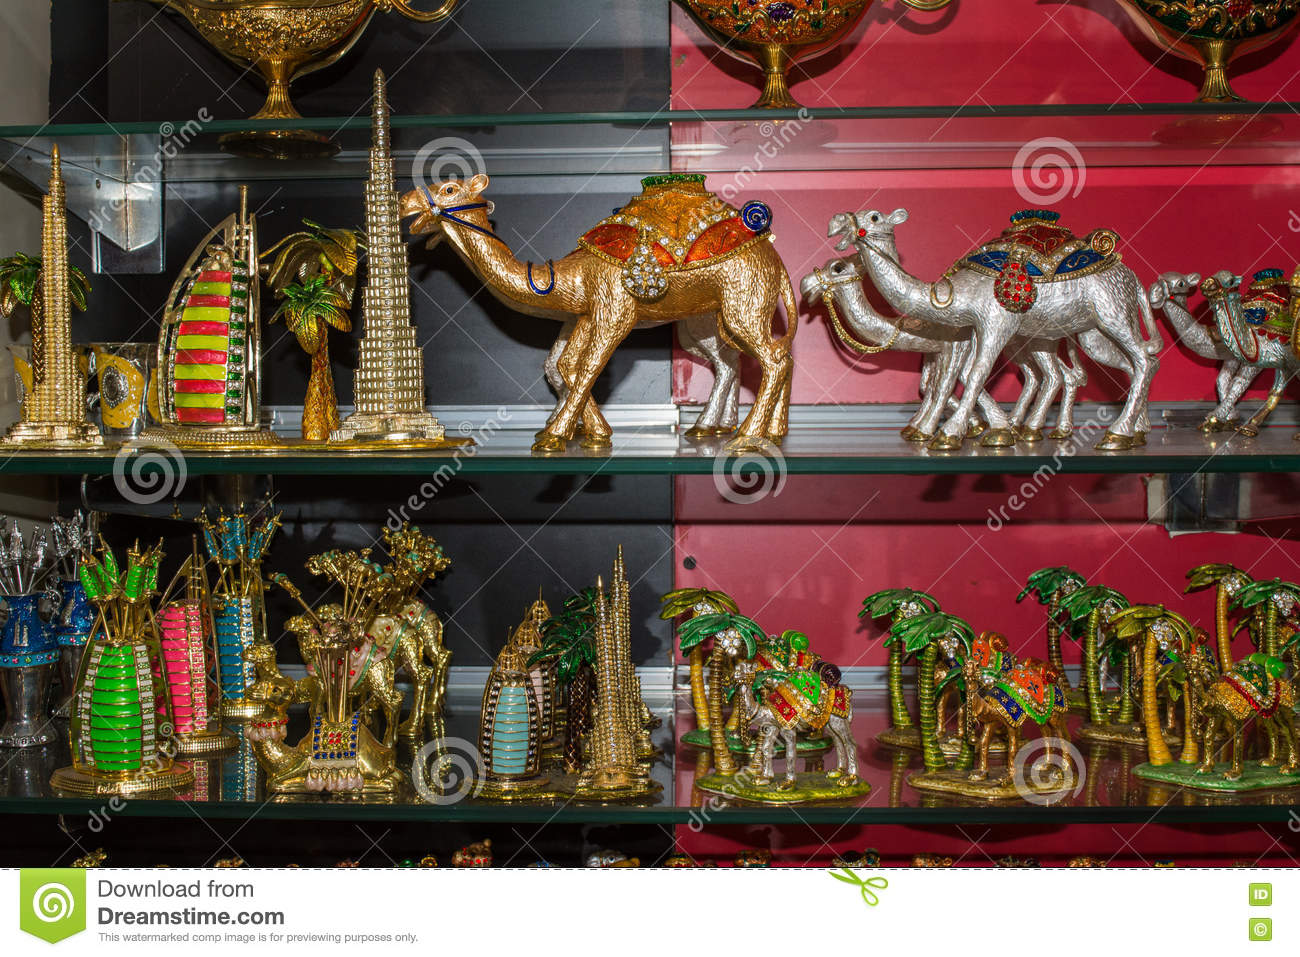 Souvenir Goods In The Arabian Store Stock Image - Image of favor